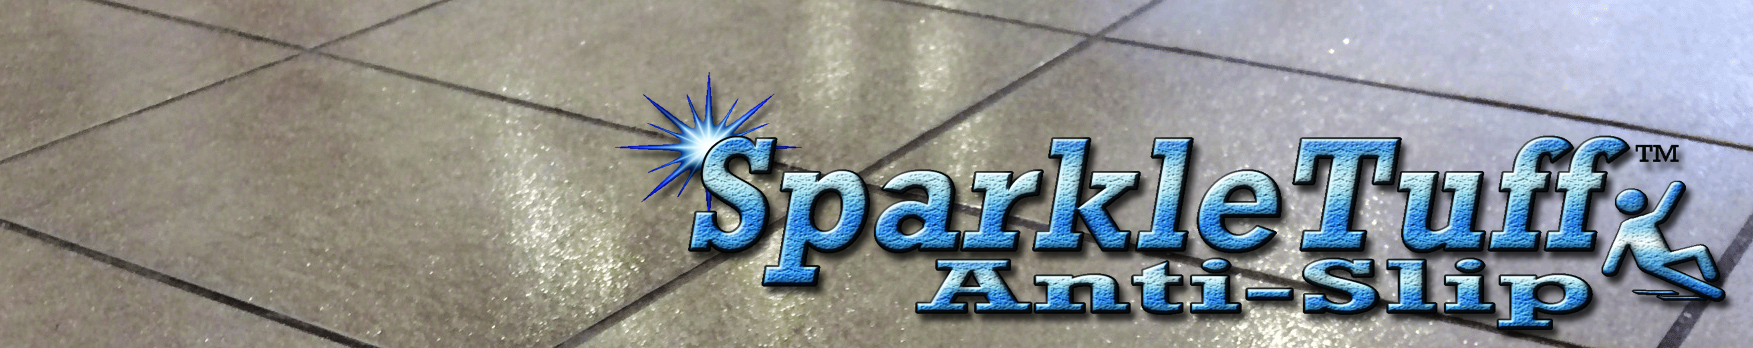 SparkleTuff Anti-Slip floor coating image